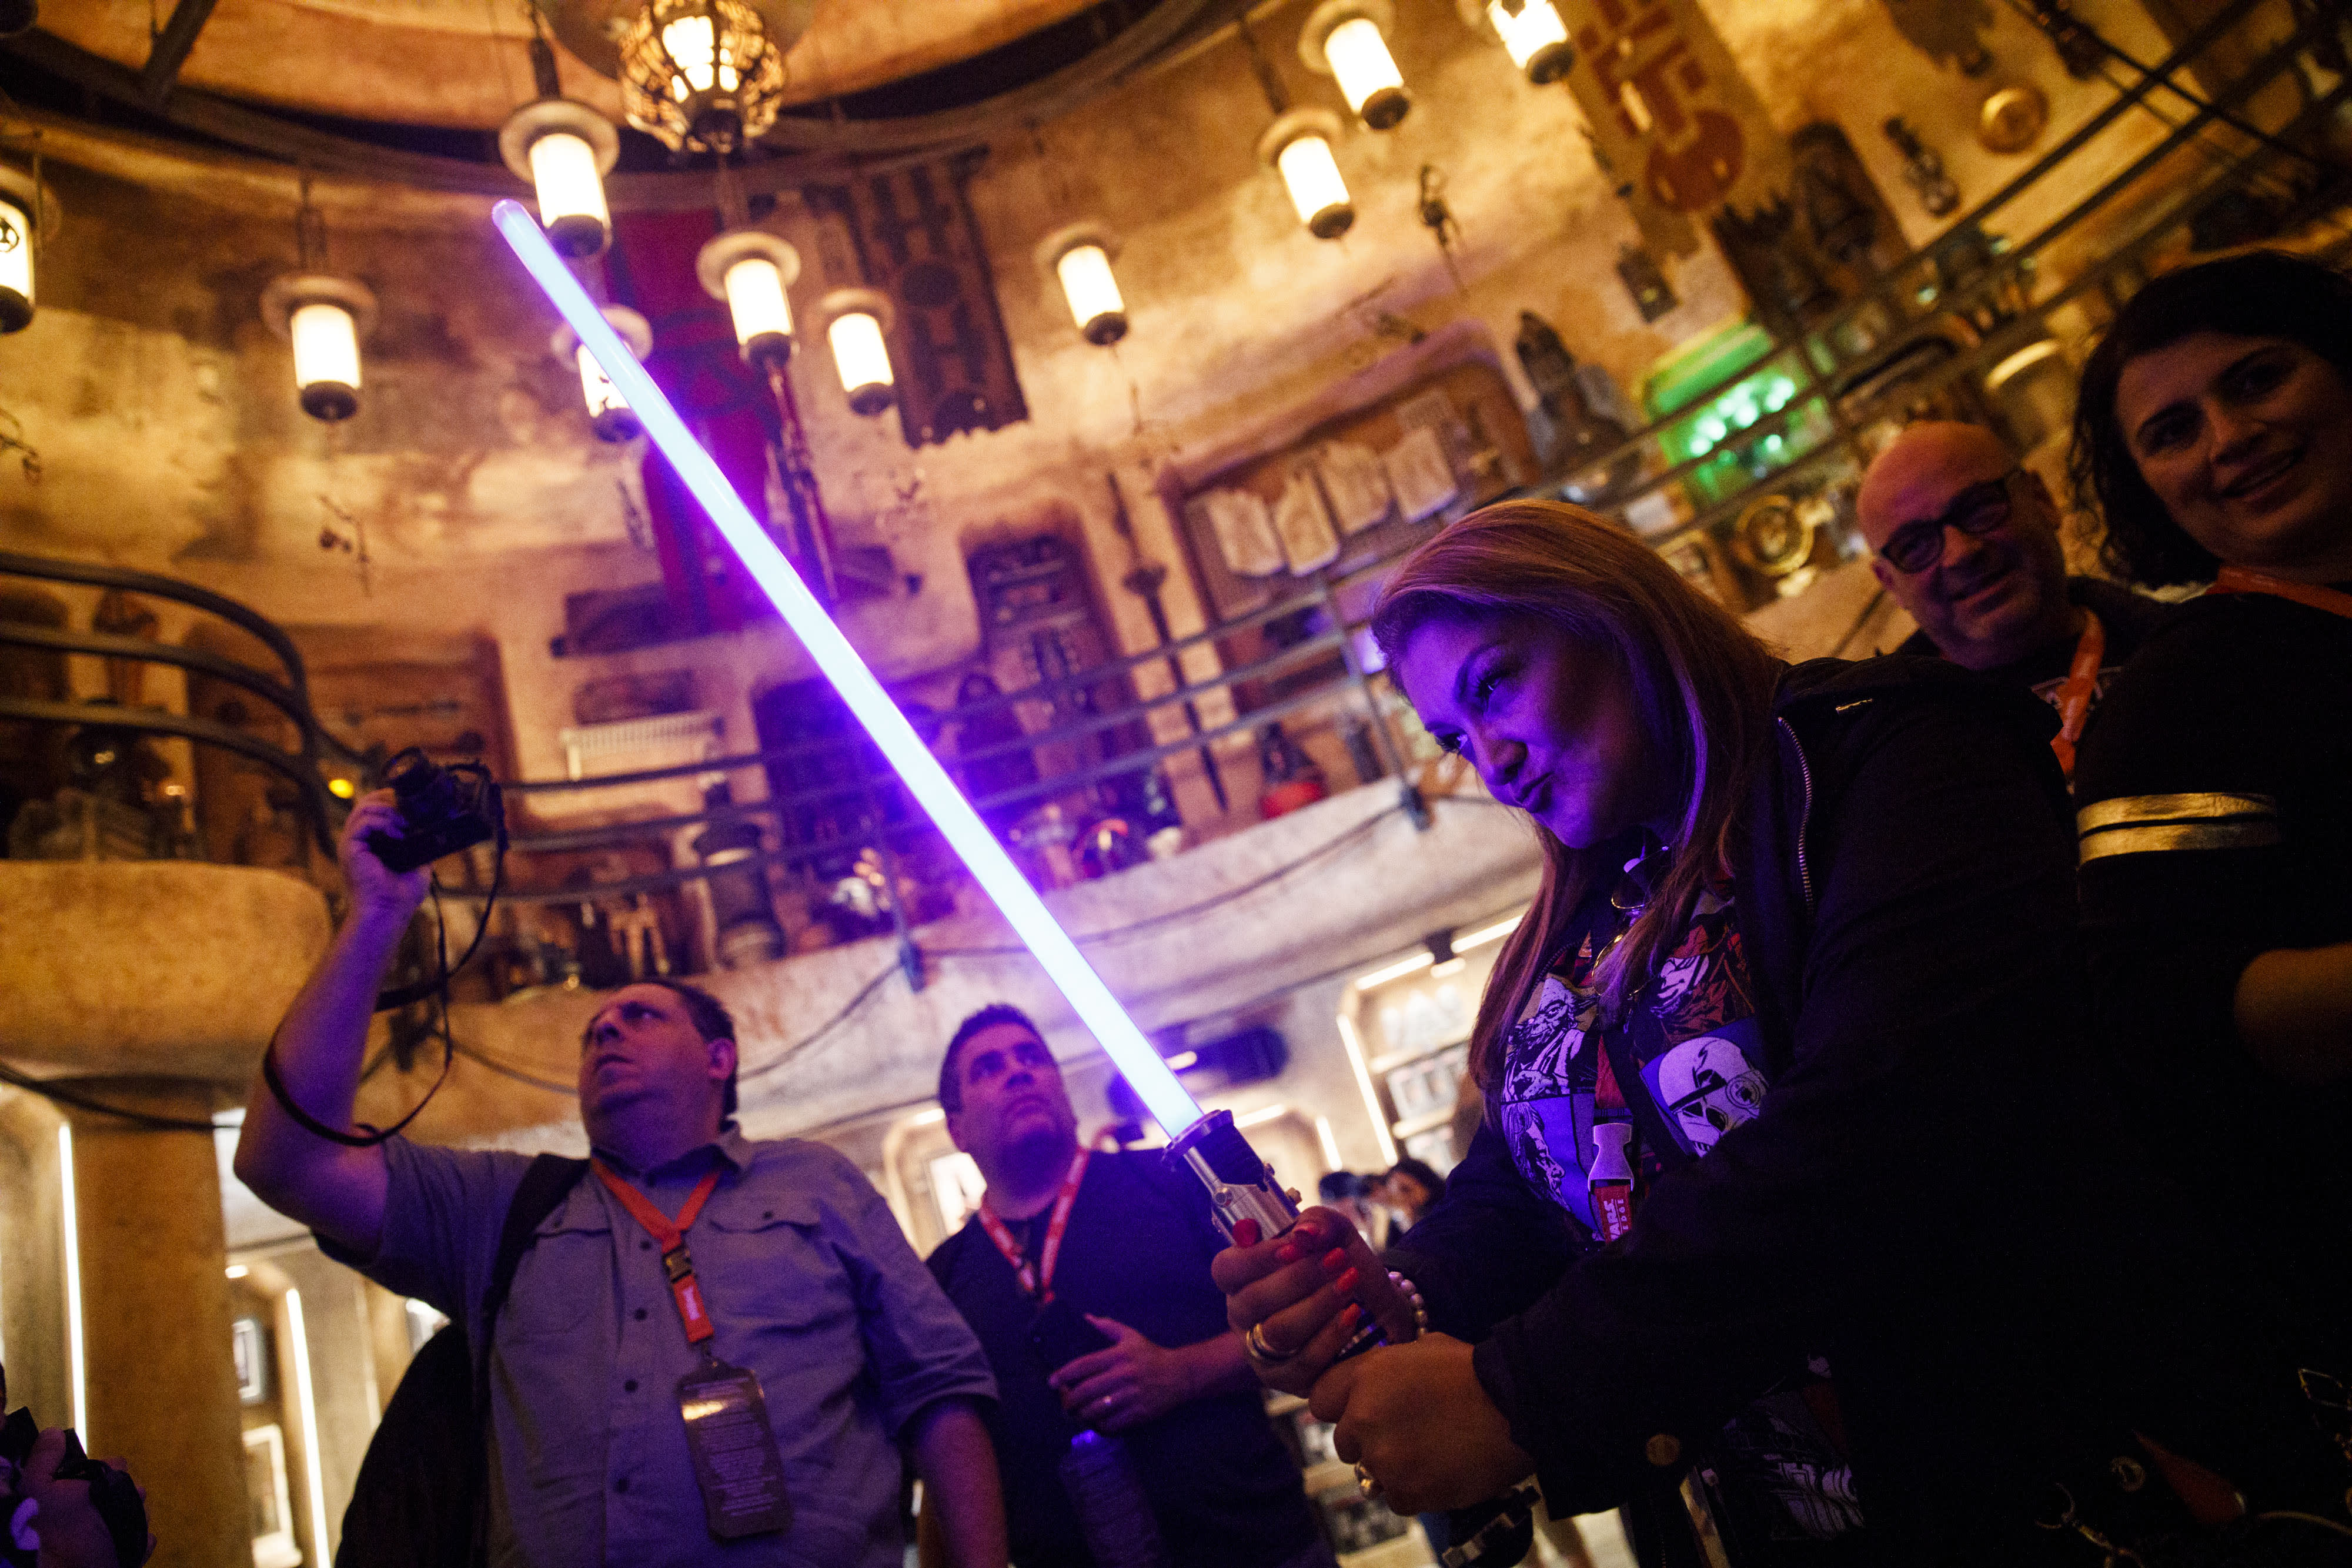 You can build a $200 lightsaber at Disneyland's new Star Wars: Galaxy's Edge — here's what you get